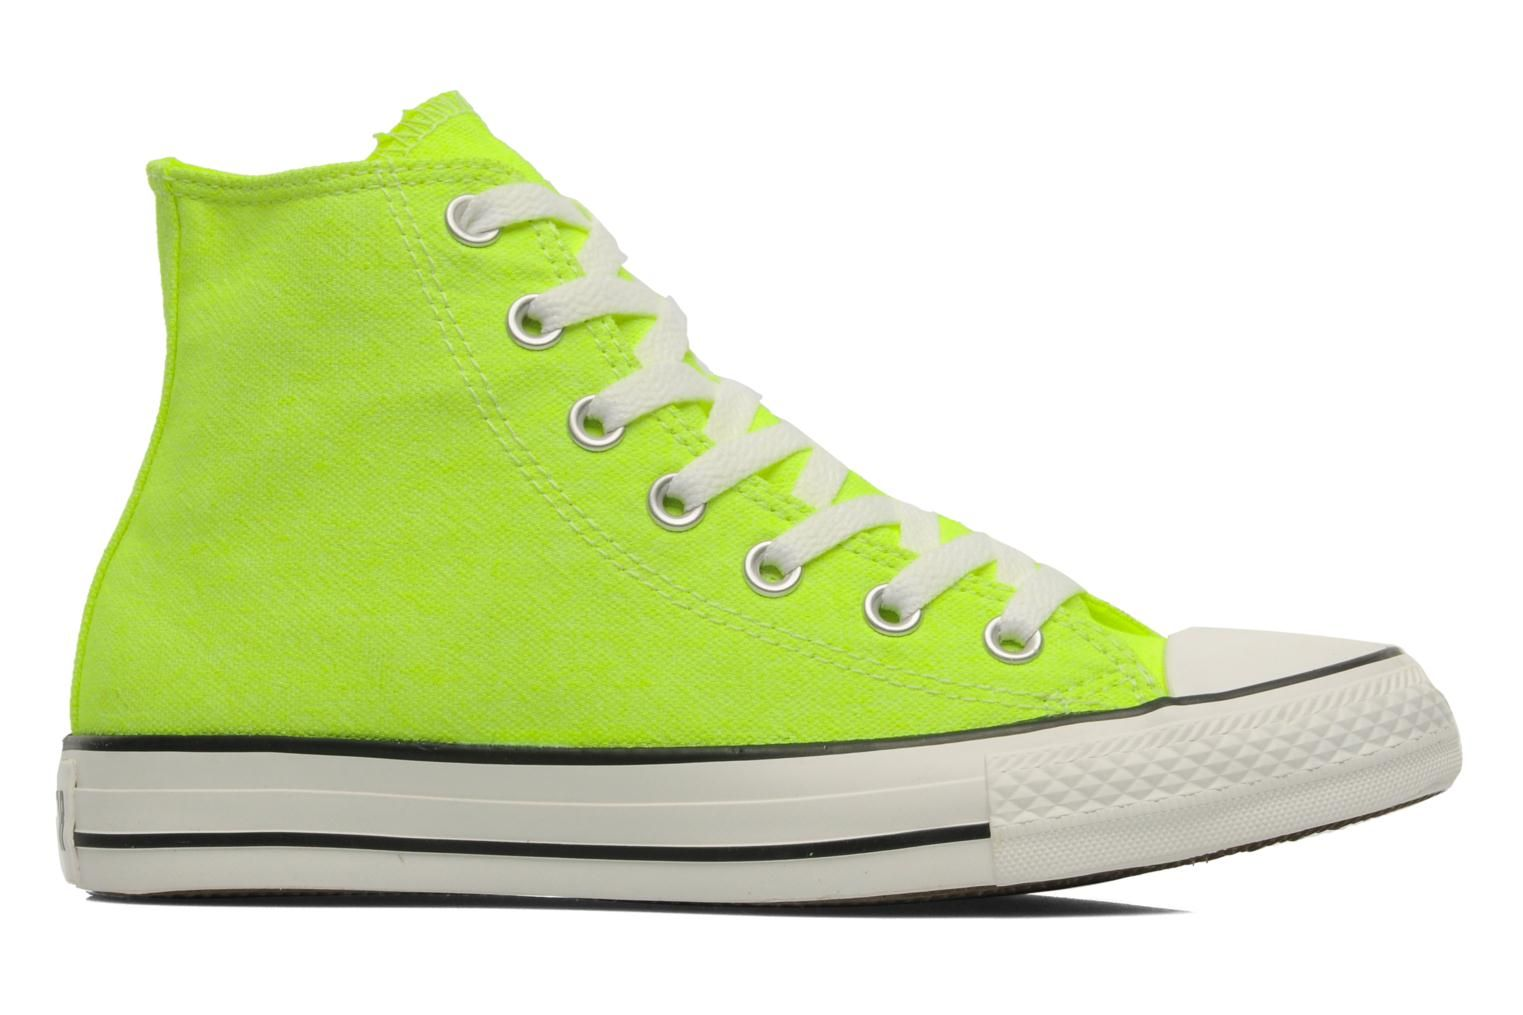 2dfdab4b832248 Chuck Taylor All Star Washed Neon Hi W by Converse (Yellow ...